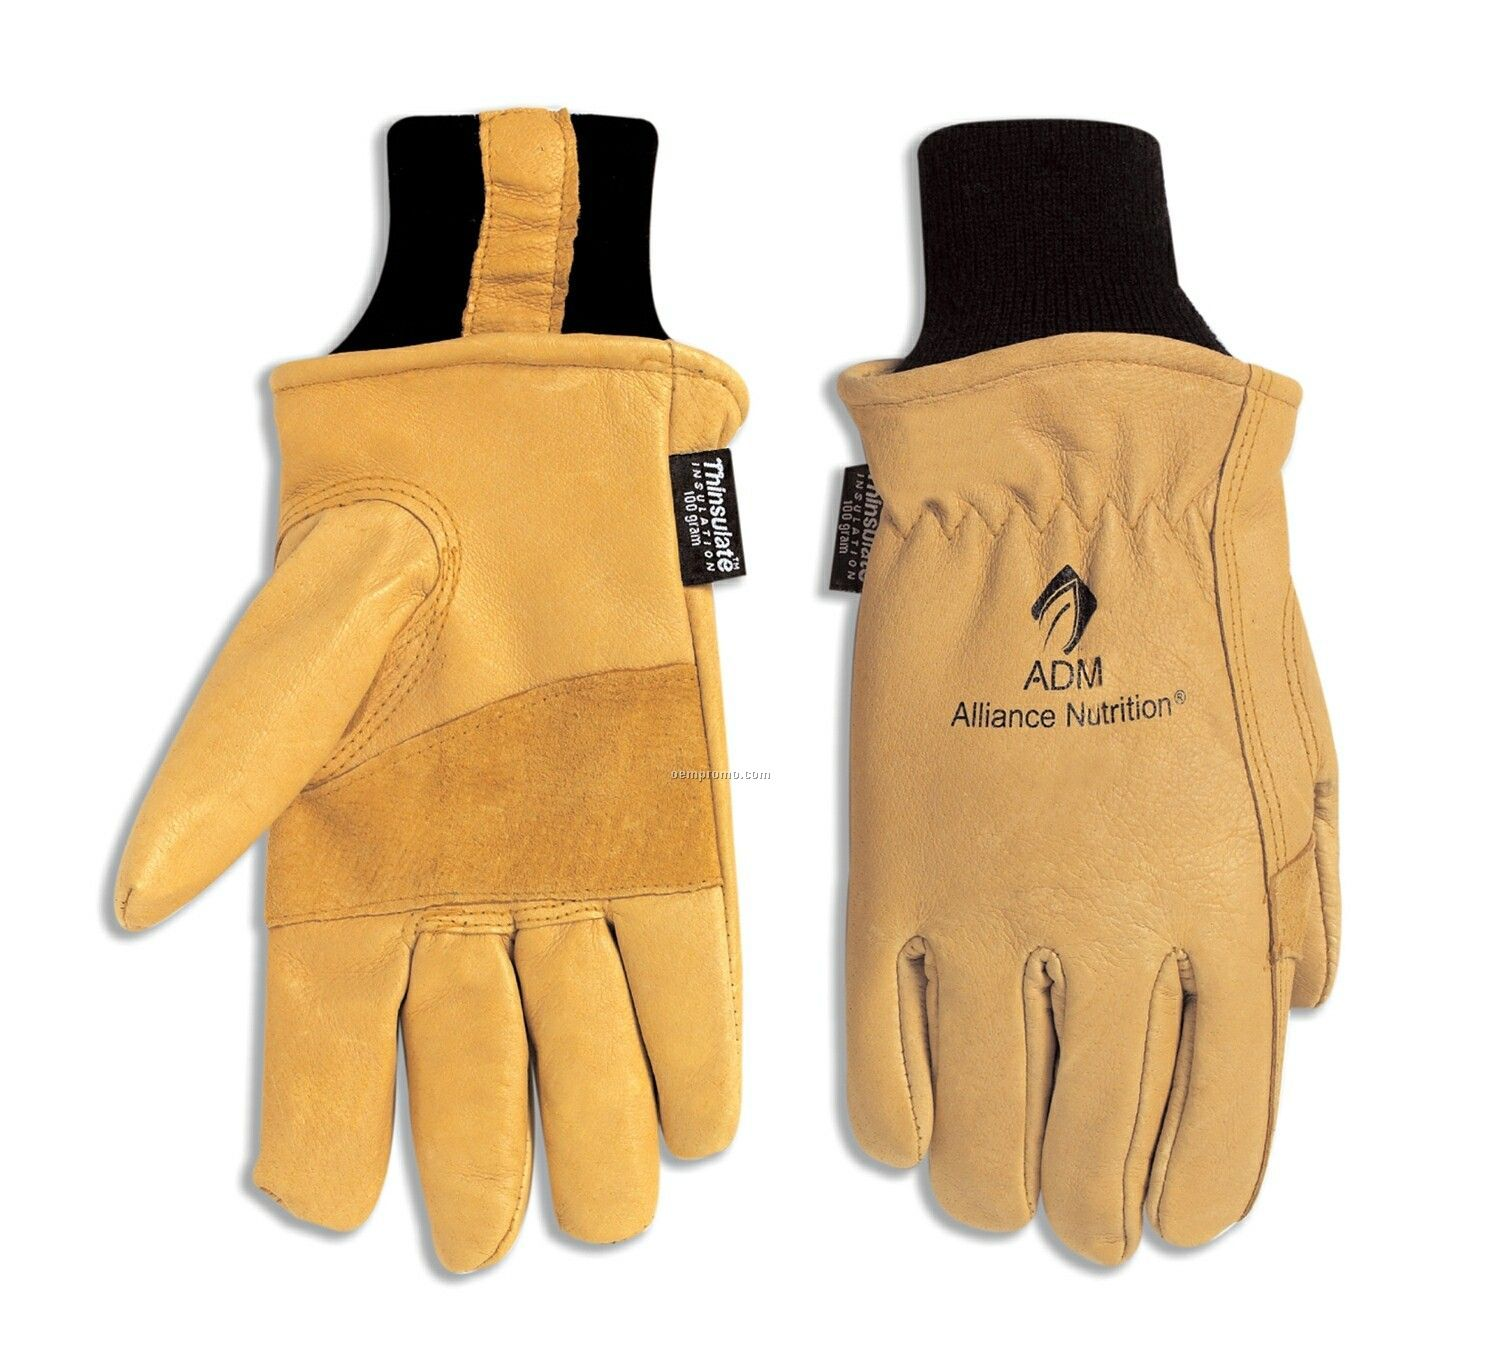 Thinsulate-lined Grain Pigskin Glove With Double Palm & Knit Wrist (S-xl)